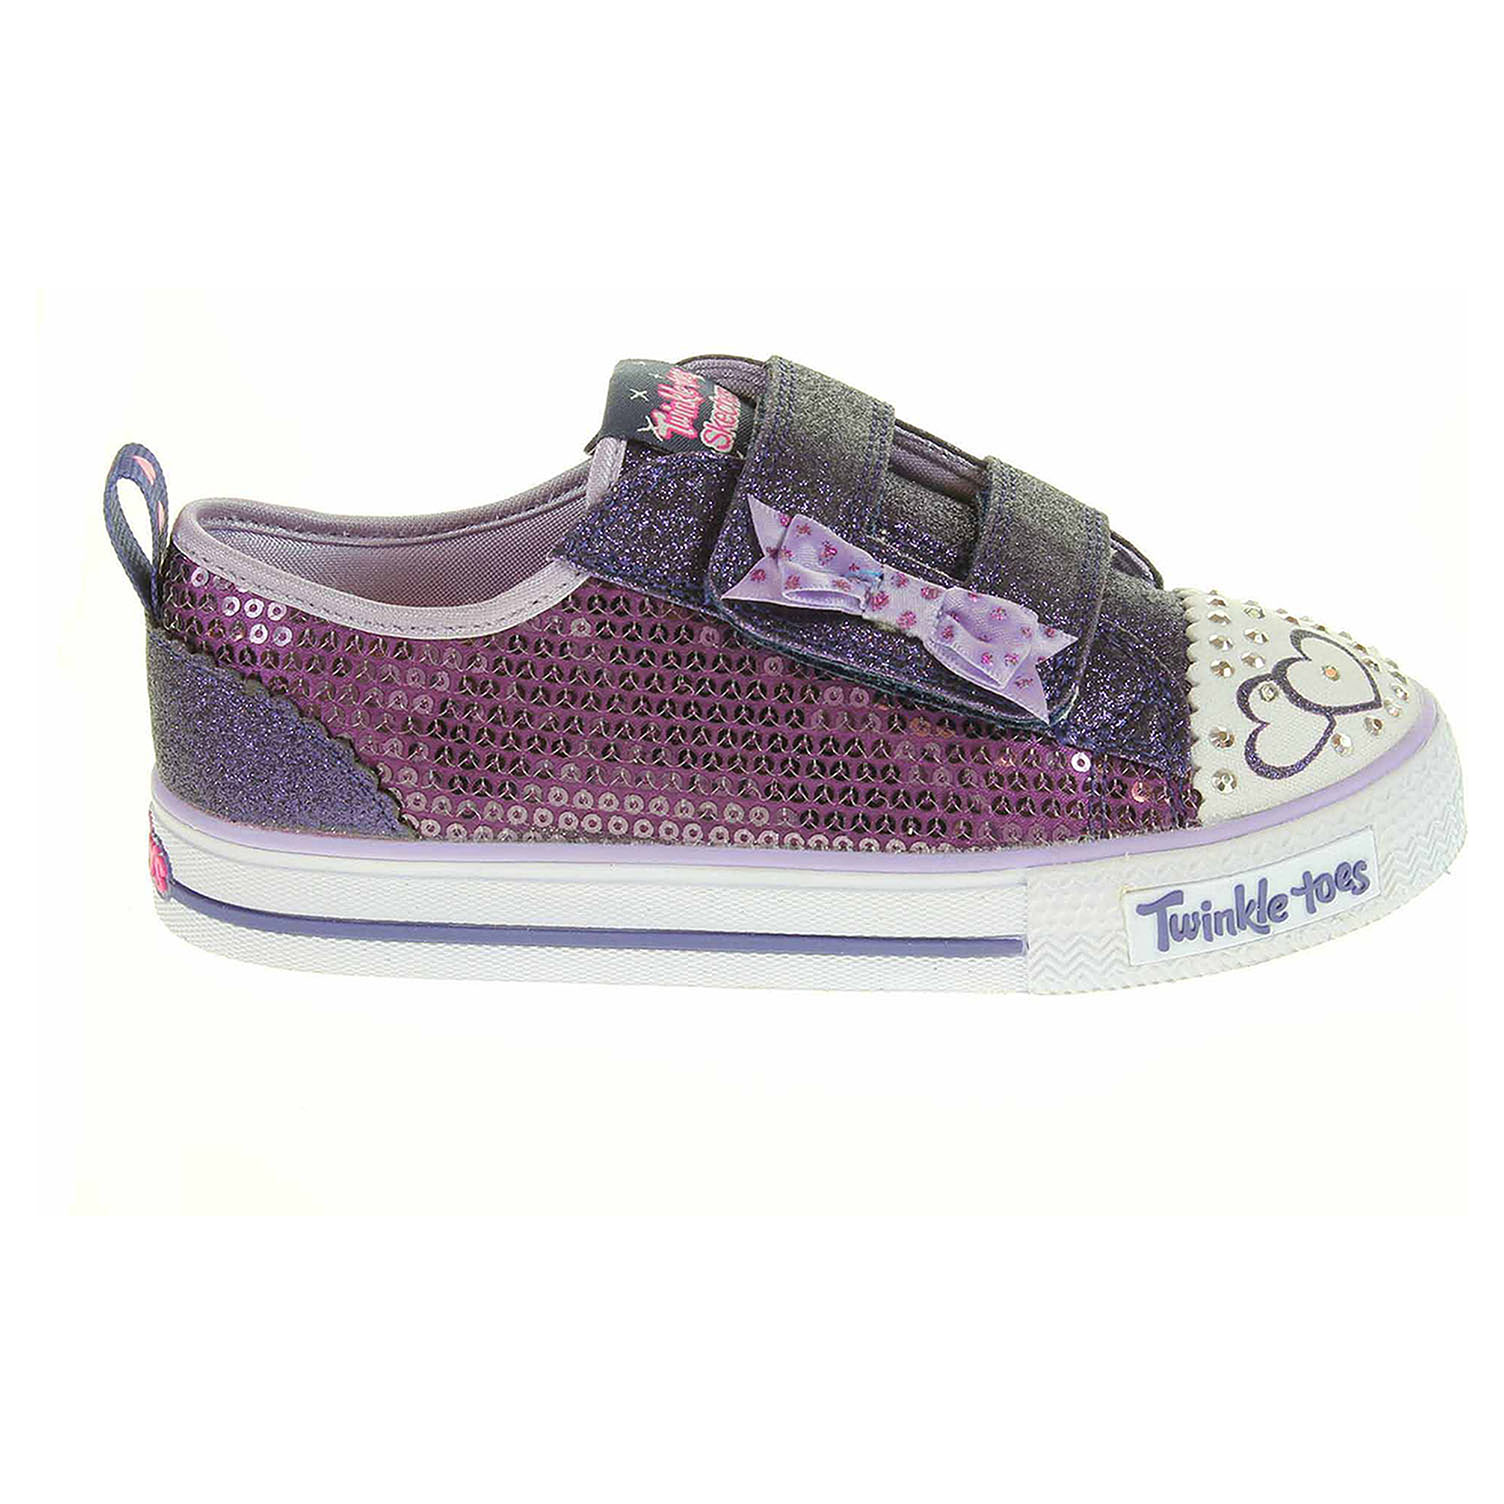 detail Skechers S Lights-Shuffles - Itsy Bitsy purple-blue